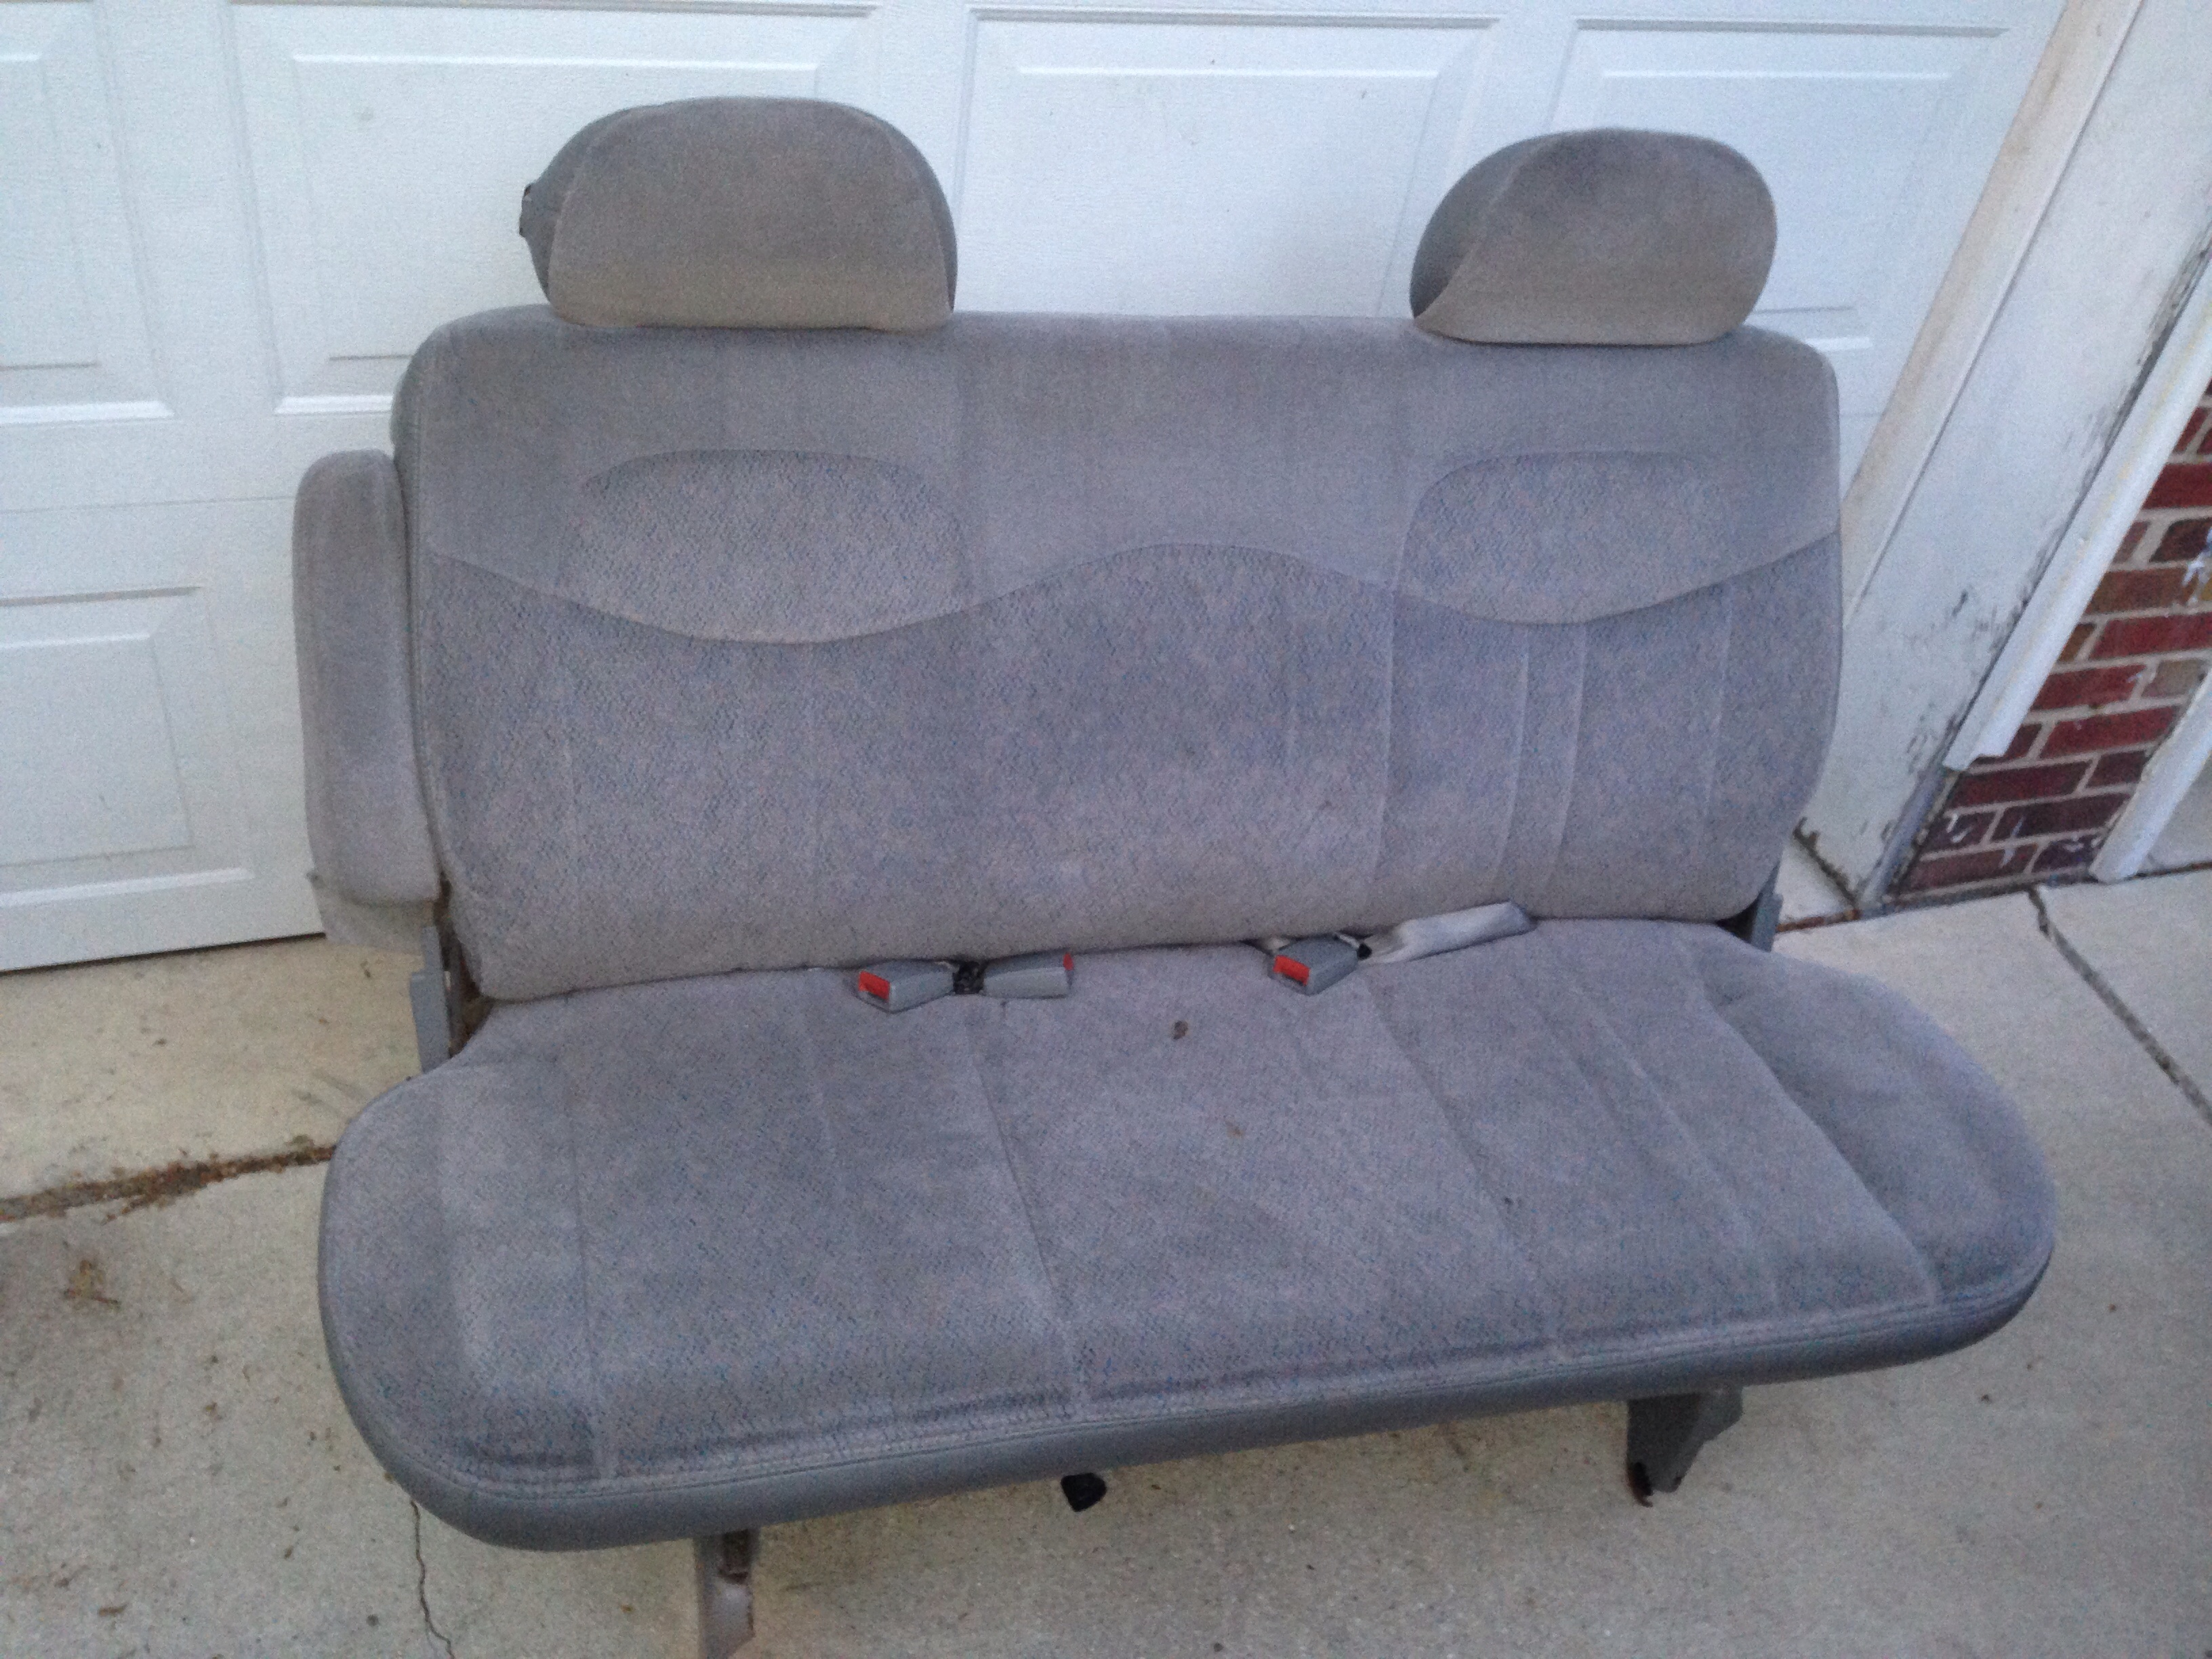 Bench seats for sale